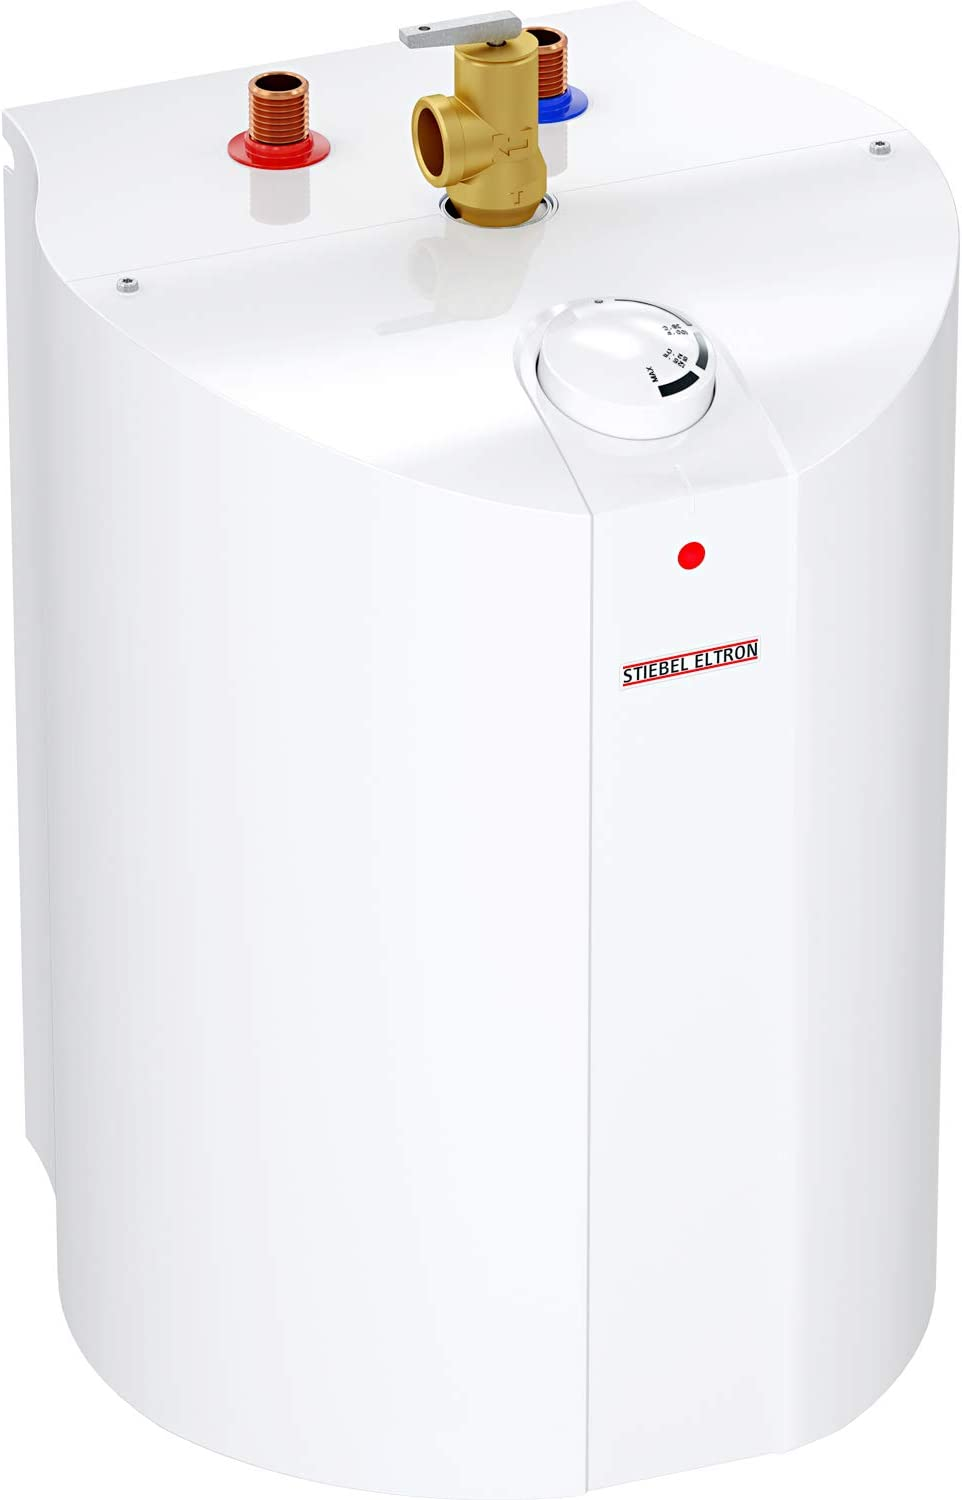 "Stiebel Eltron 234046 SHC 4 Mini-Tank Electric Water Heater, 4 Gallon, 1300W, 120V, 12-5/8"" W x 19-3/4 12-1/2"" D"